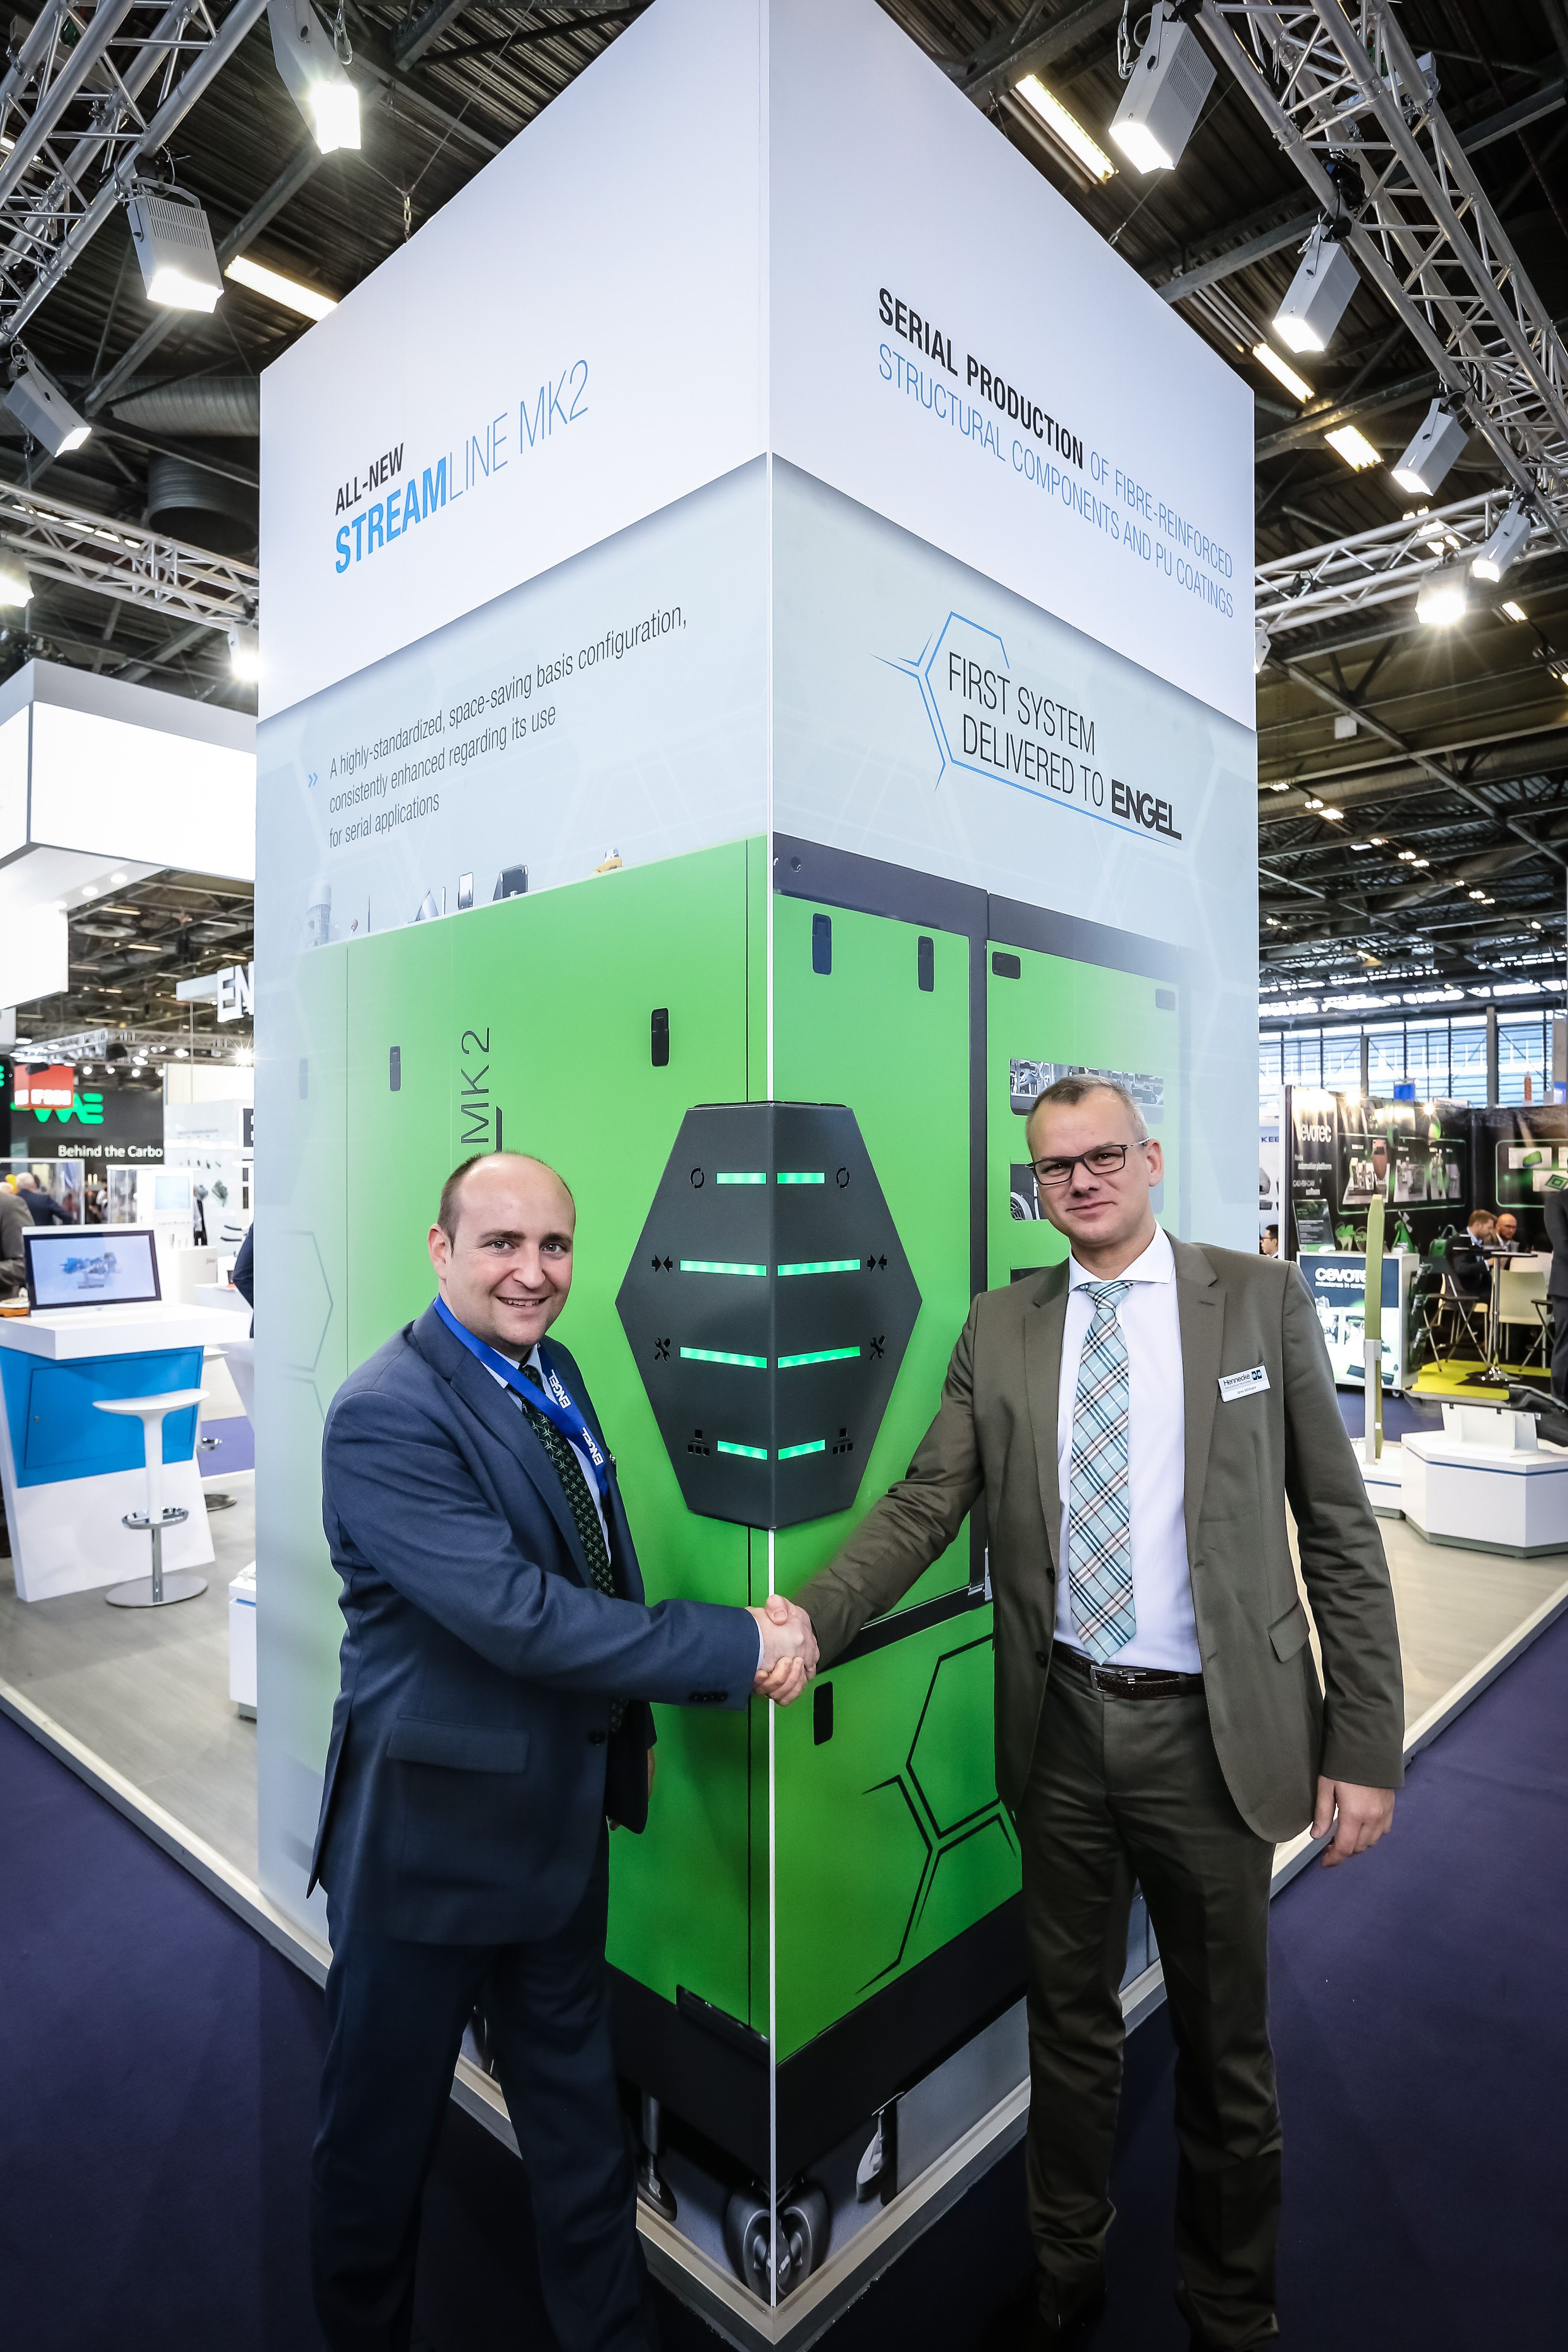 Engel Austria is looking forward to receive of the world's first Streamline MK2 for use in the company's own lightweight construction technology centre. (F.l.t.r.: Matthias Mayr, Head of Engel Composite Systems and Jens Winiarz, Head of Composites & Advanced Applications, Hennecke GmbH (Source: Hennecke)